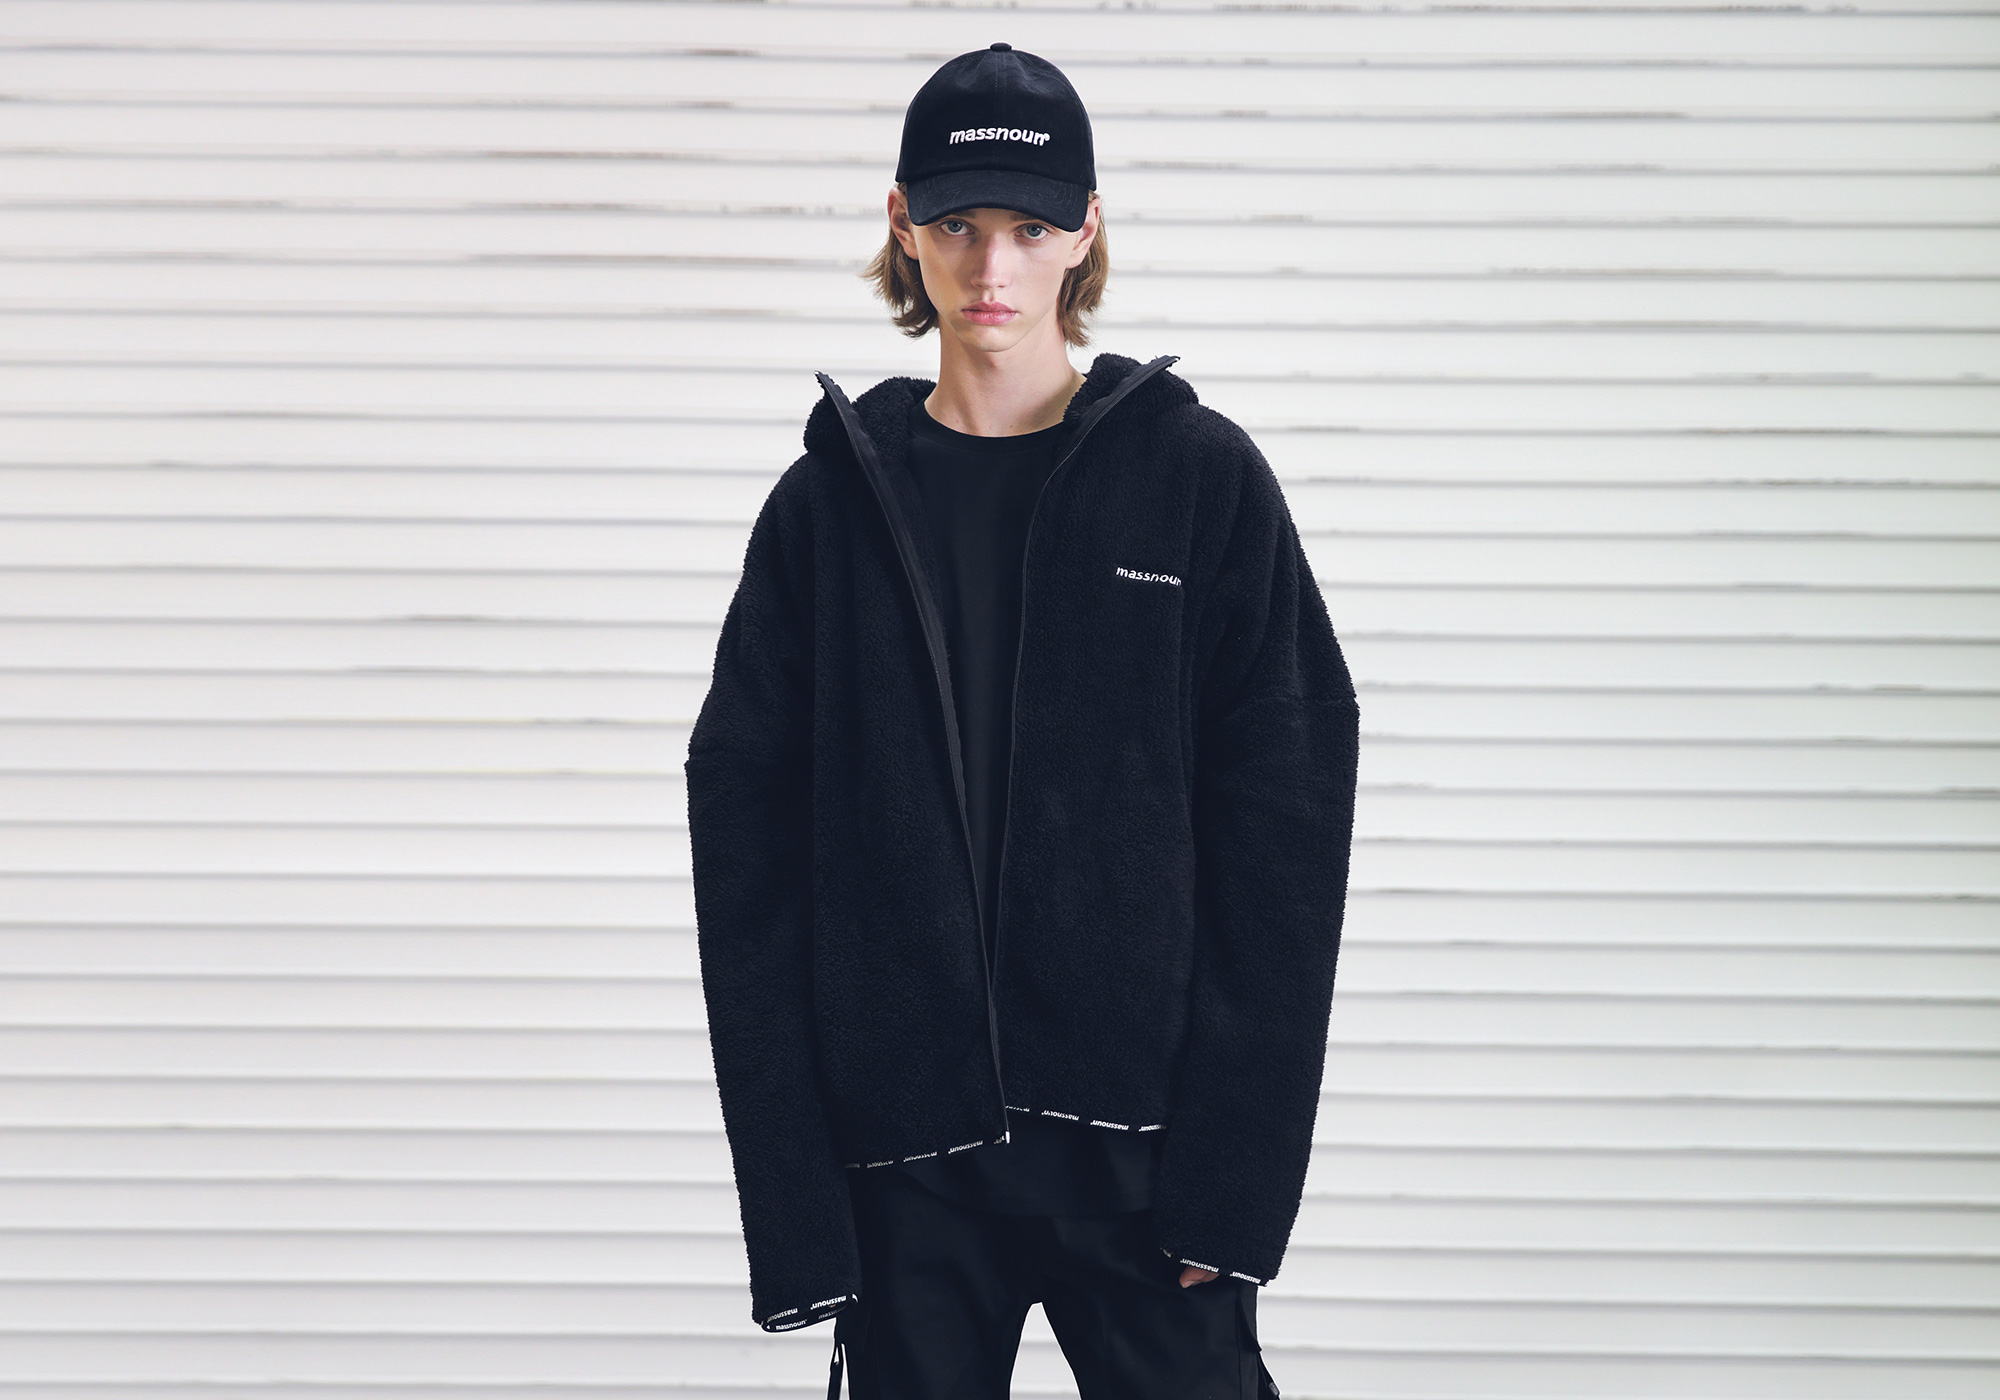 2018 Fall & Winter 1st LookBook